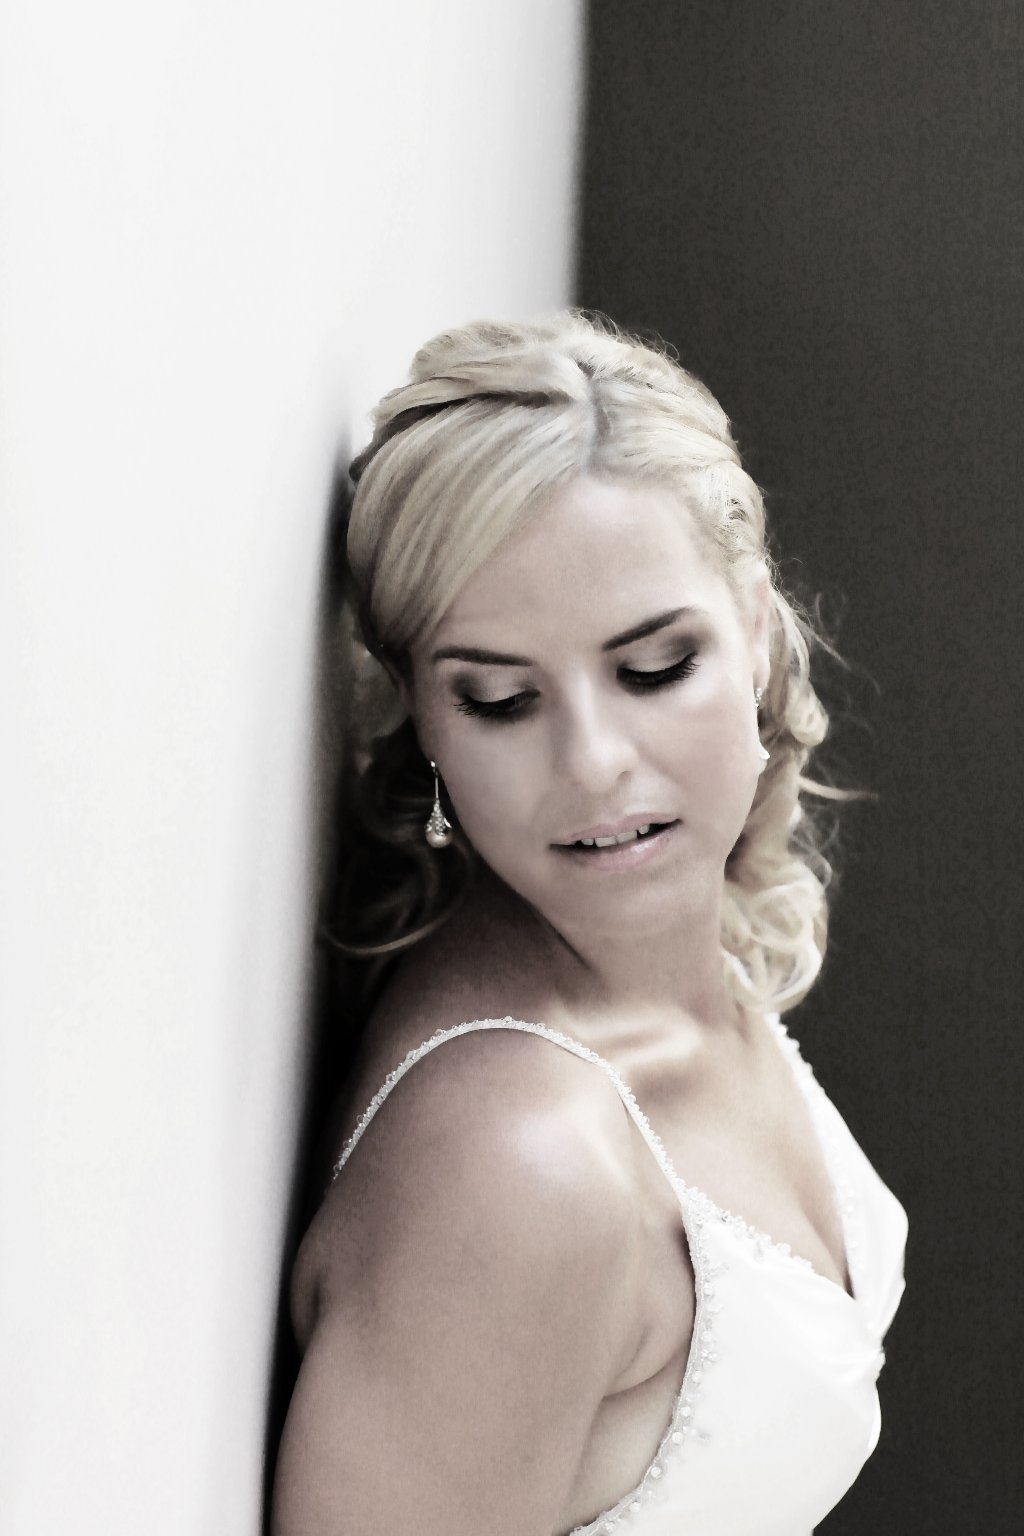 Cairns Hair And Makeup Artistry: Wedding Hair & Make-up Specialists, Hairdresers